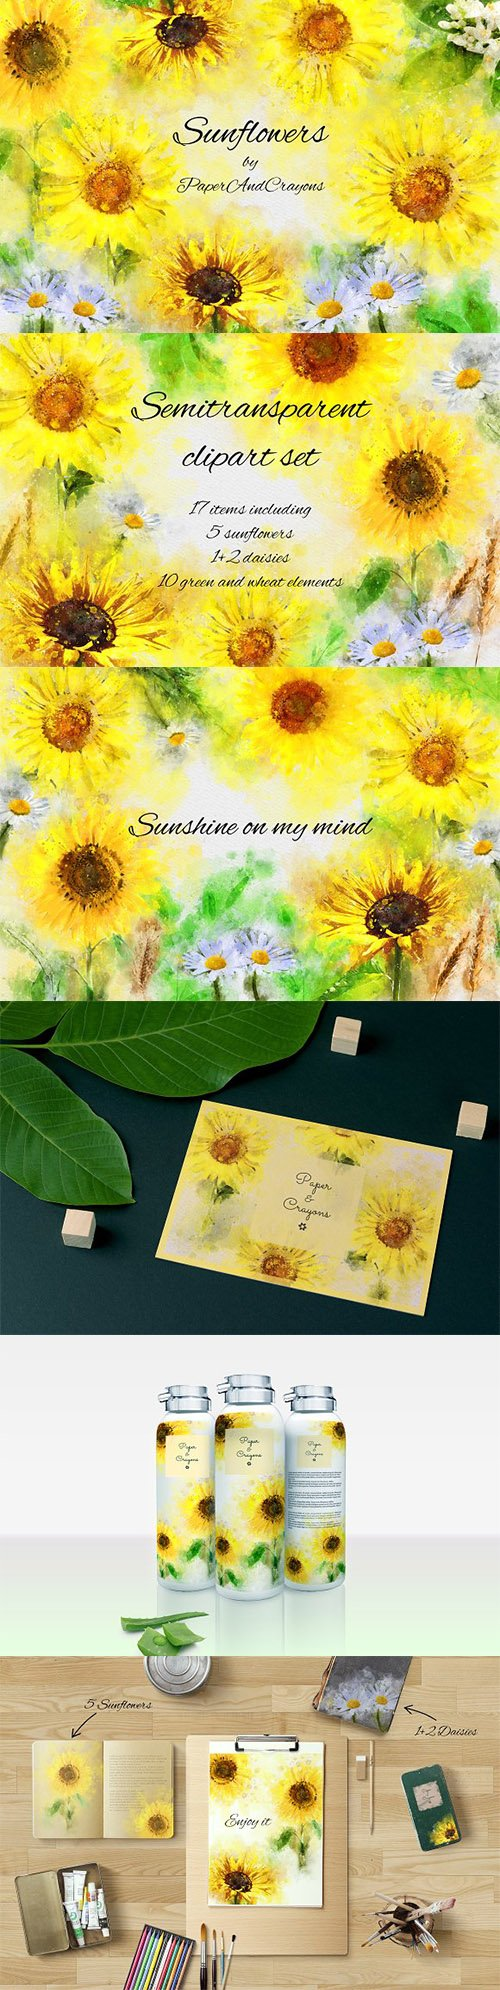 CreativeMarket - Sunflowers by PaperAndCrayons 2368970